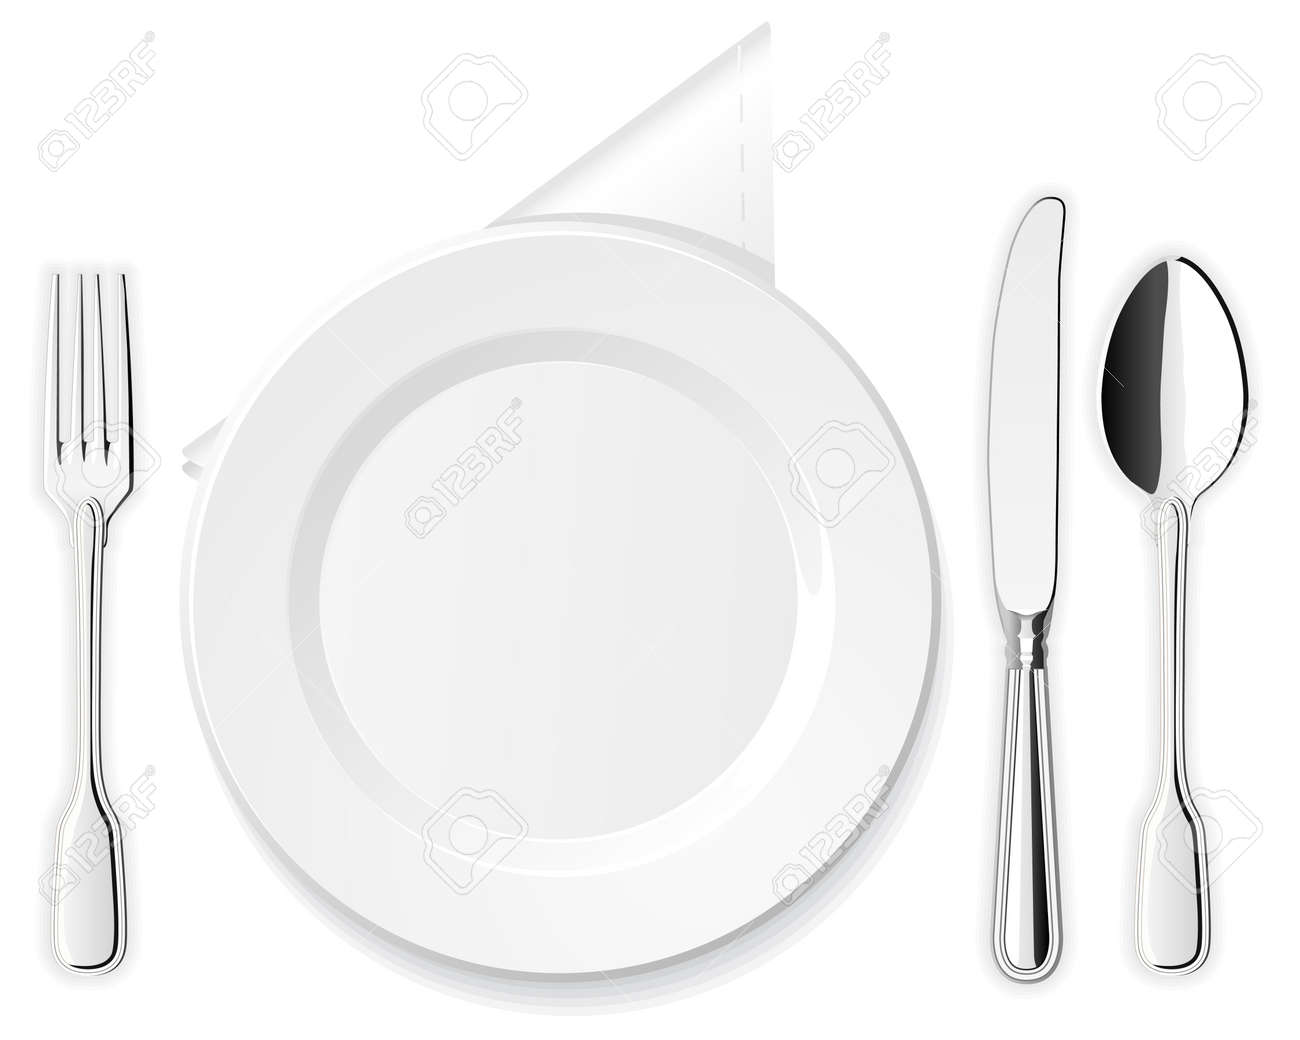 Plate, knife, spoon and fork Stock Vector - 12209374